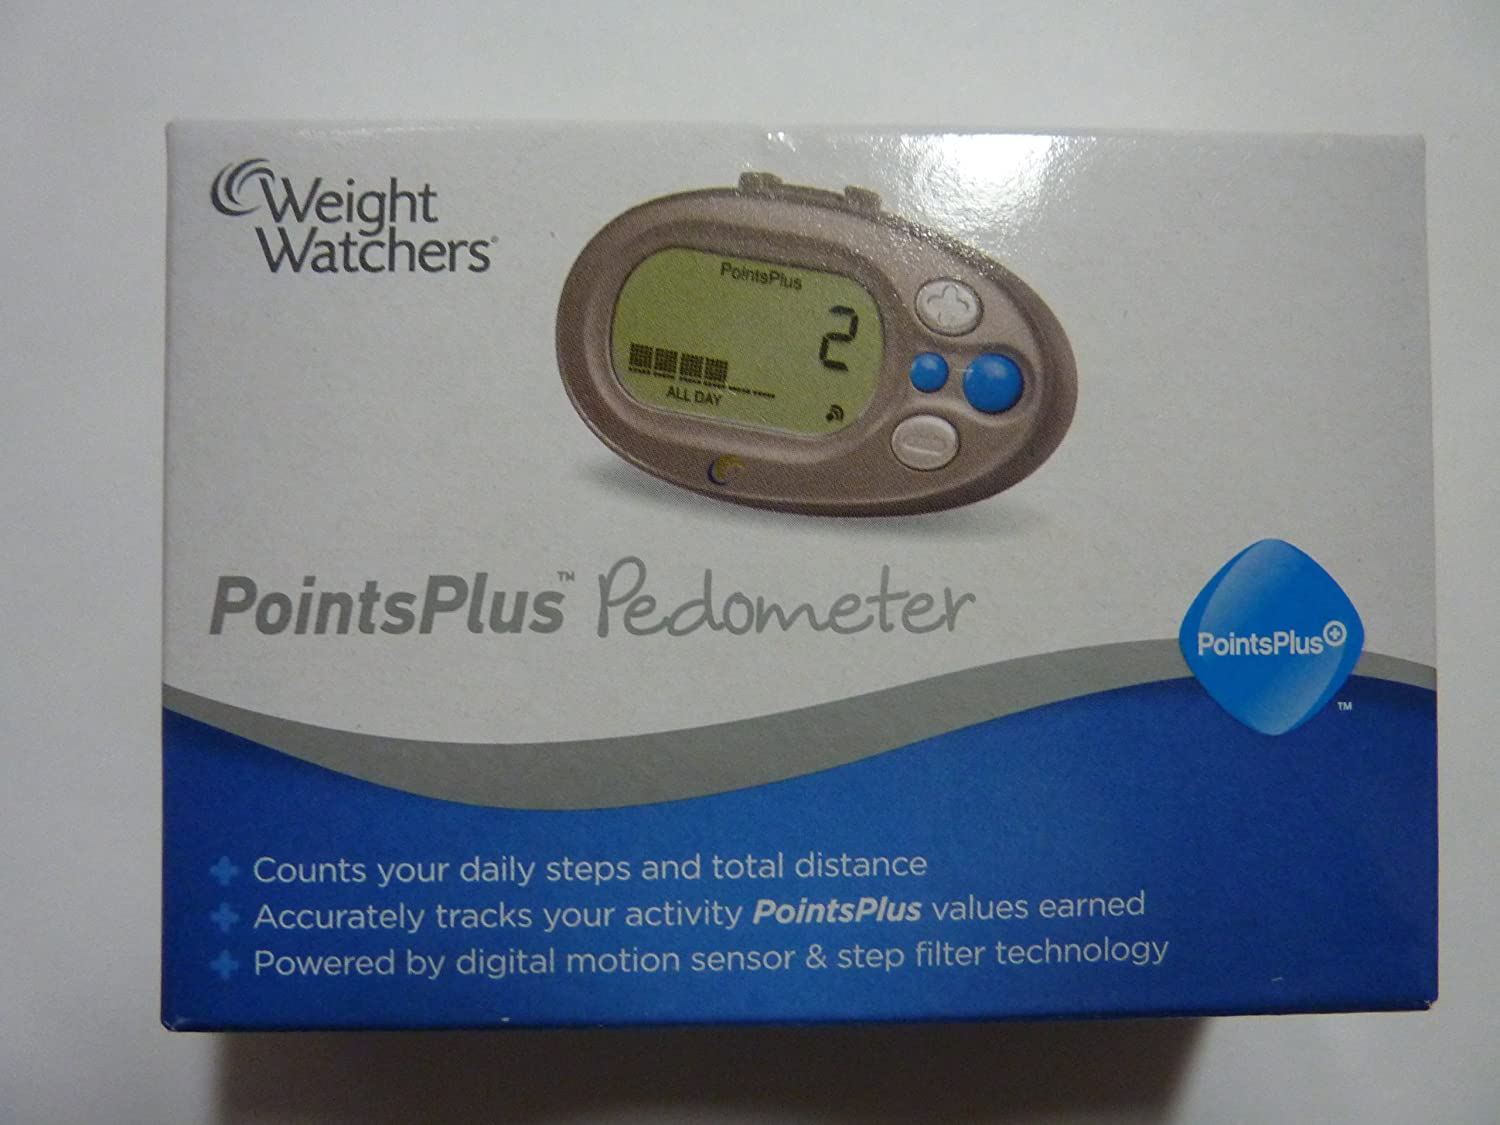 Weight Watchers Points Plus New 2012 Pedometer with Motion Sensor NEW by Weight Watchers